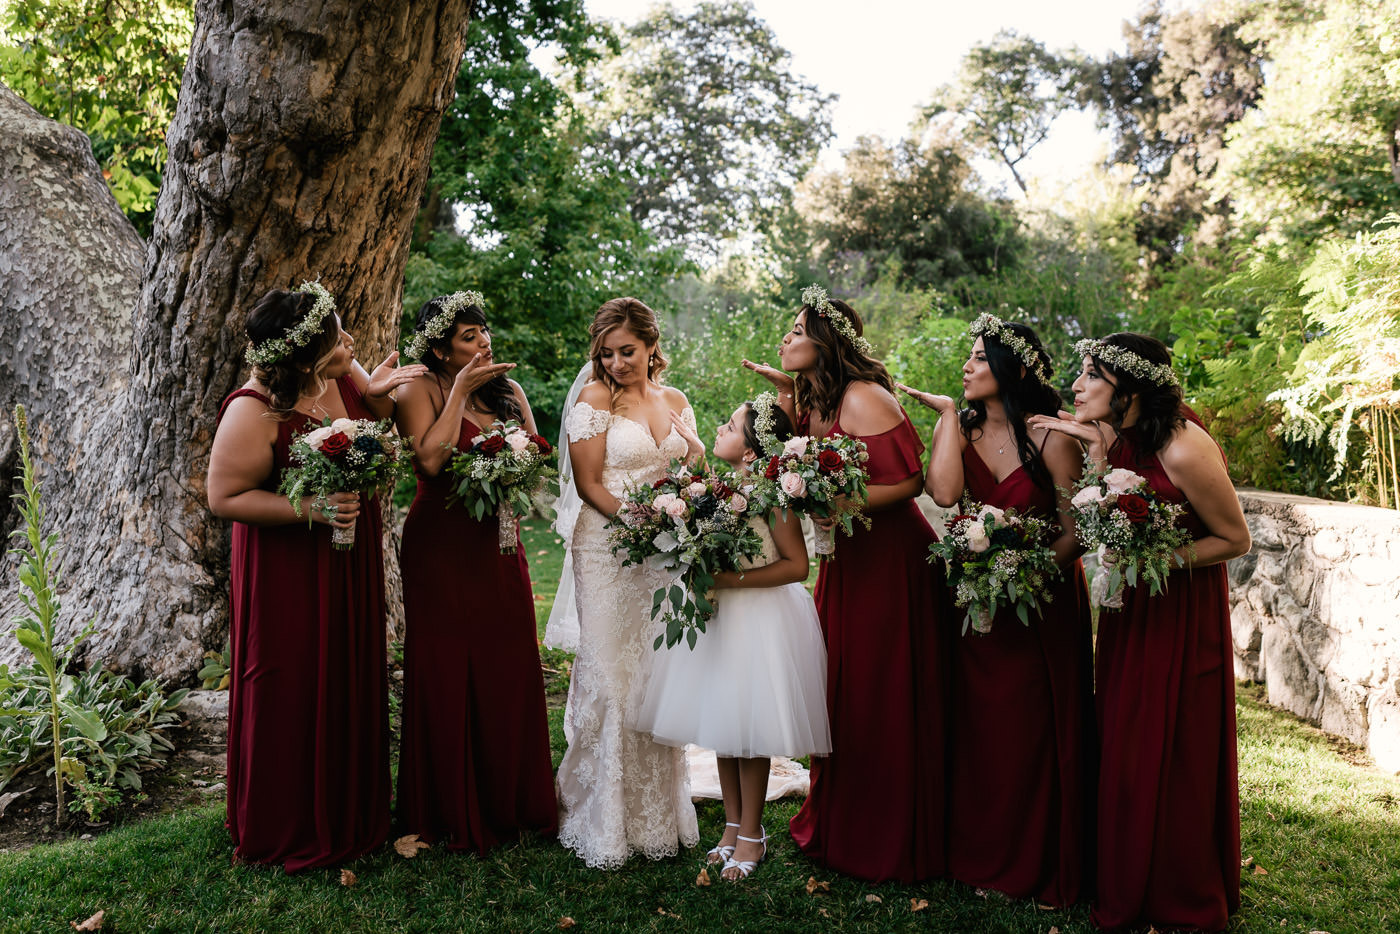 Bridesmaids blow a kiss to the beautiful bride.